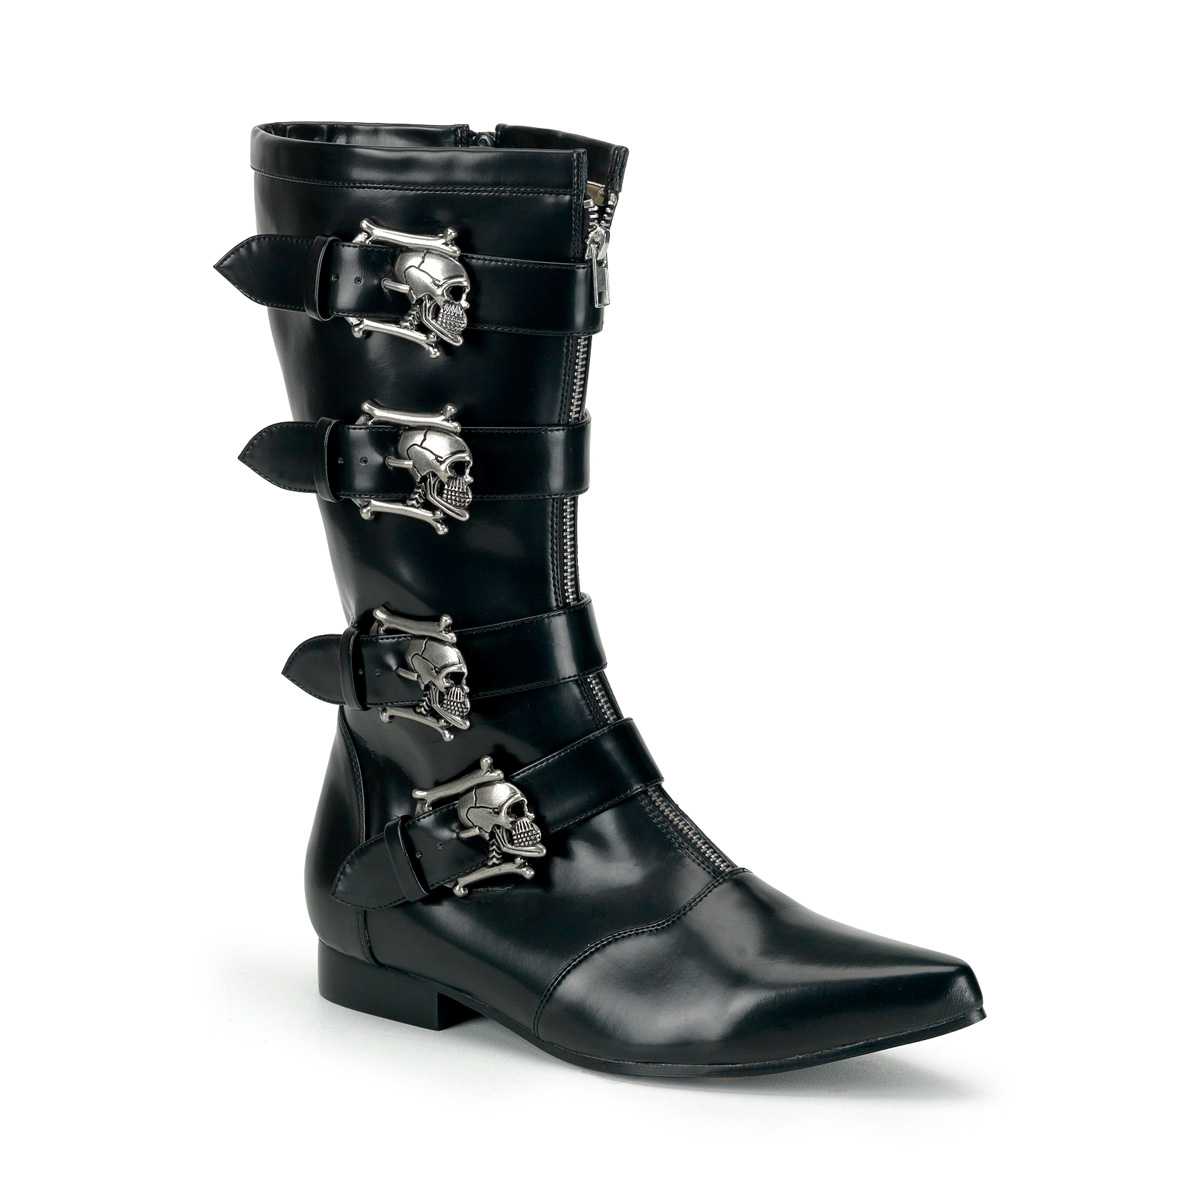 Skull Buckle Goth Boots Mid Calf Boot - More Details